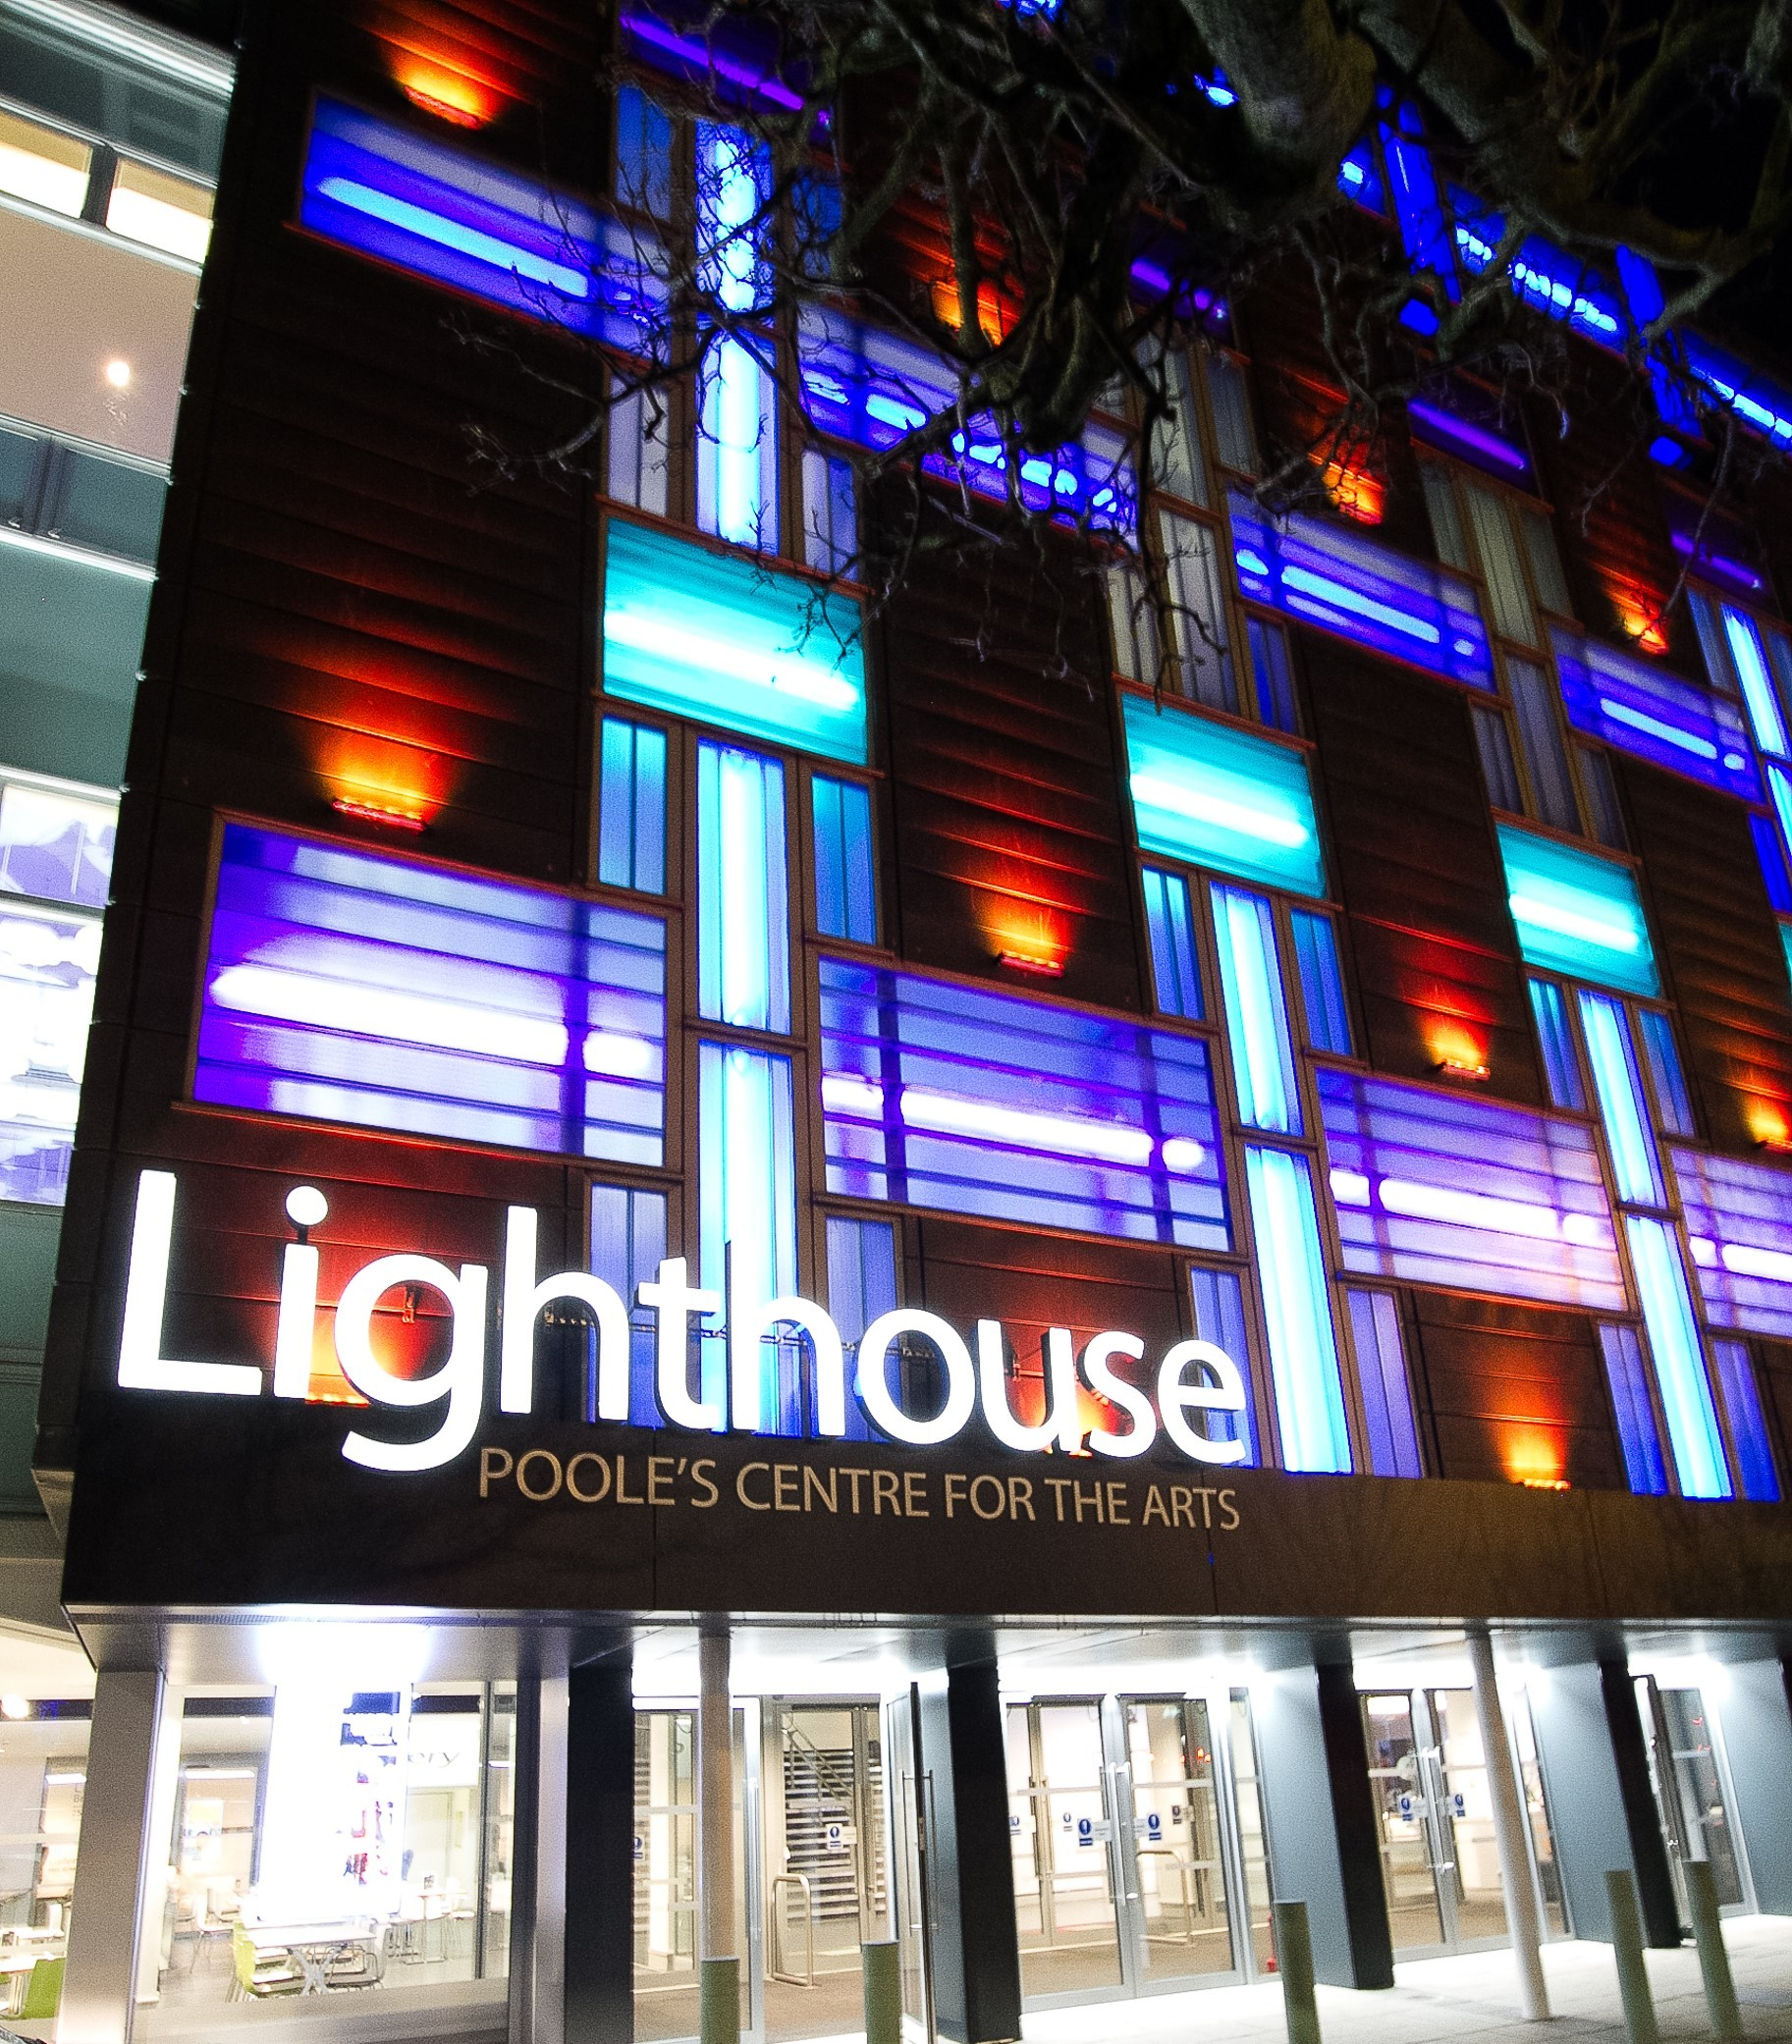 Lighthouse in Poole will host Bournemouth Male Voice Choir event